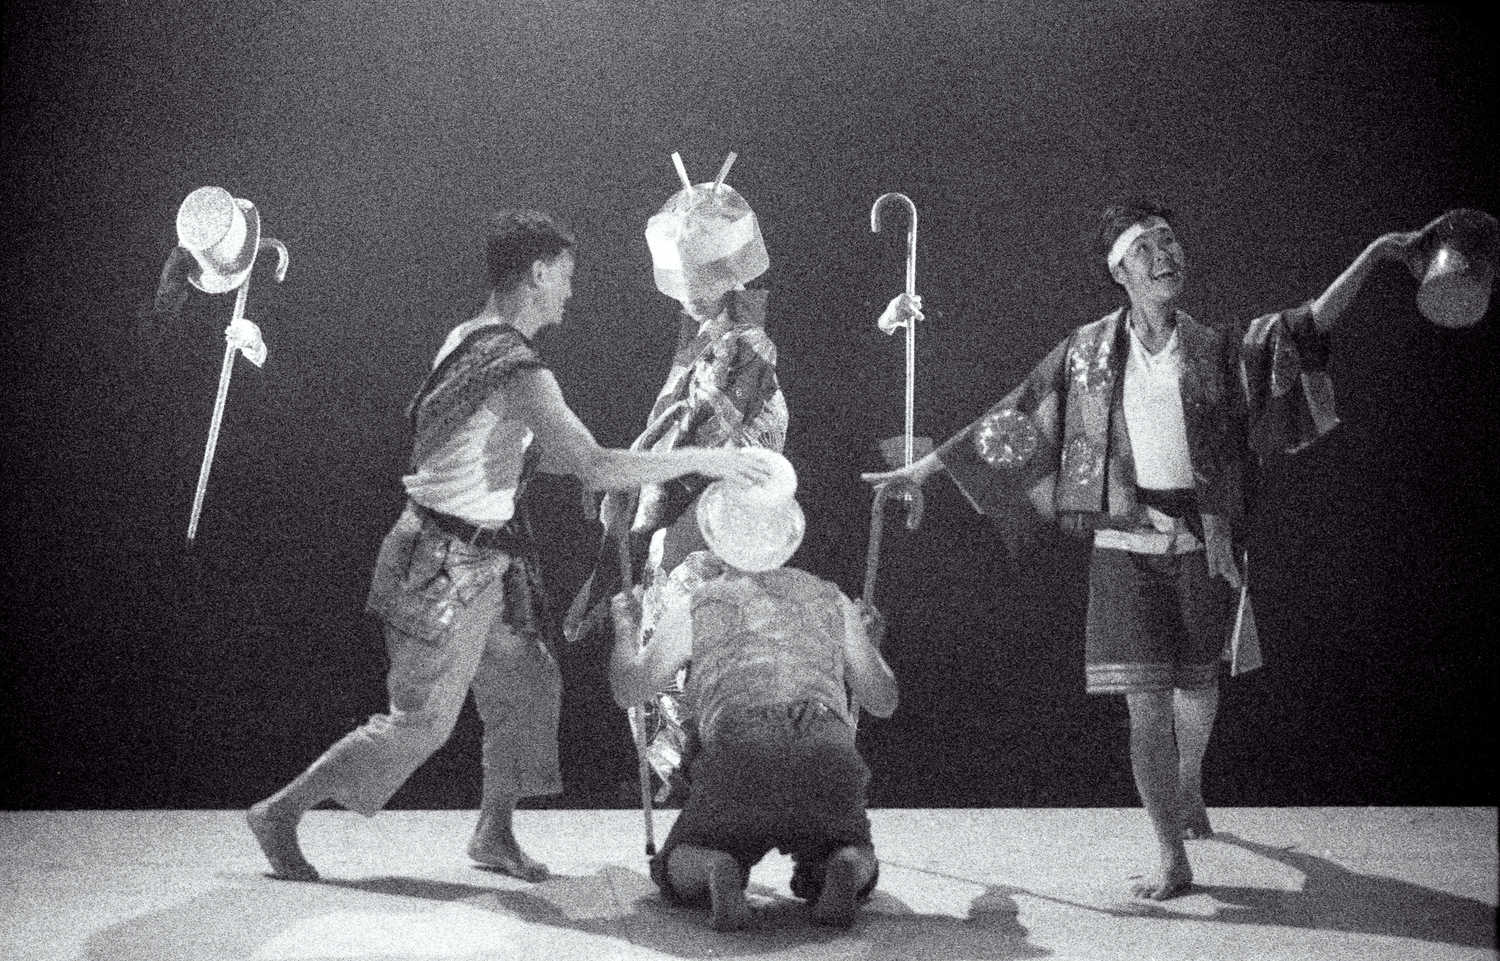 Miss Tanaka Handspan/Playbox 4 people dancing with walking sticks and hats